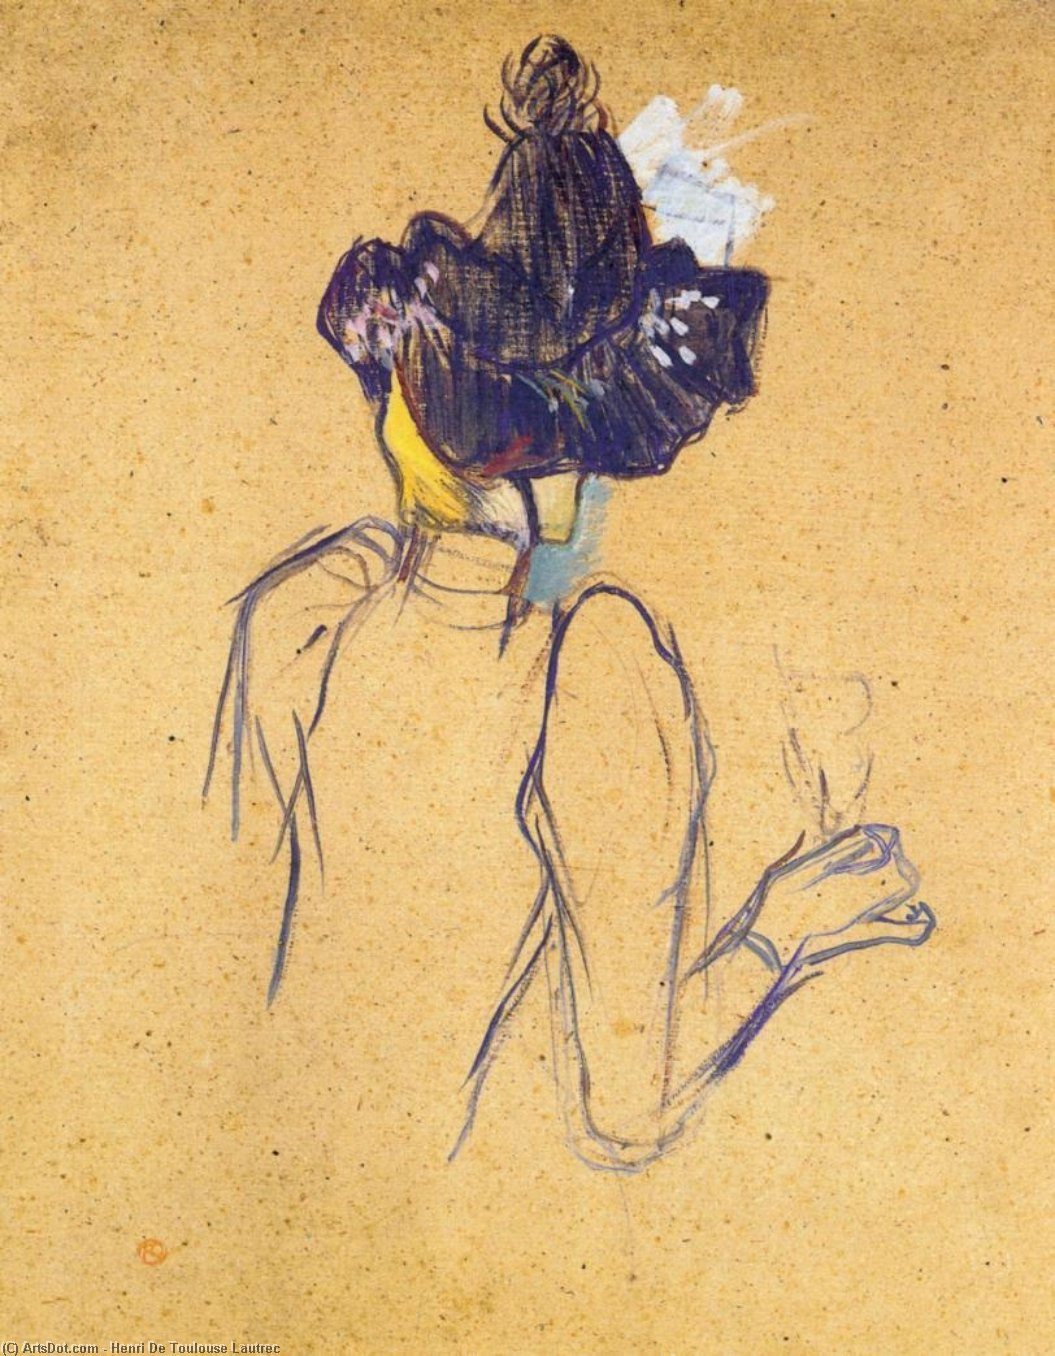 Jane Avril Seen from the Back, Oil by Henri De Toulouse Lautrec (1864-1901, France)